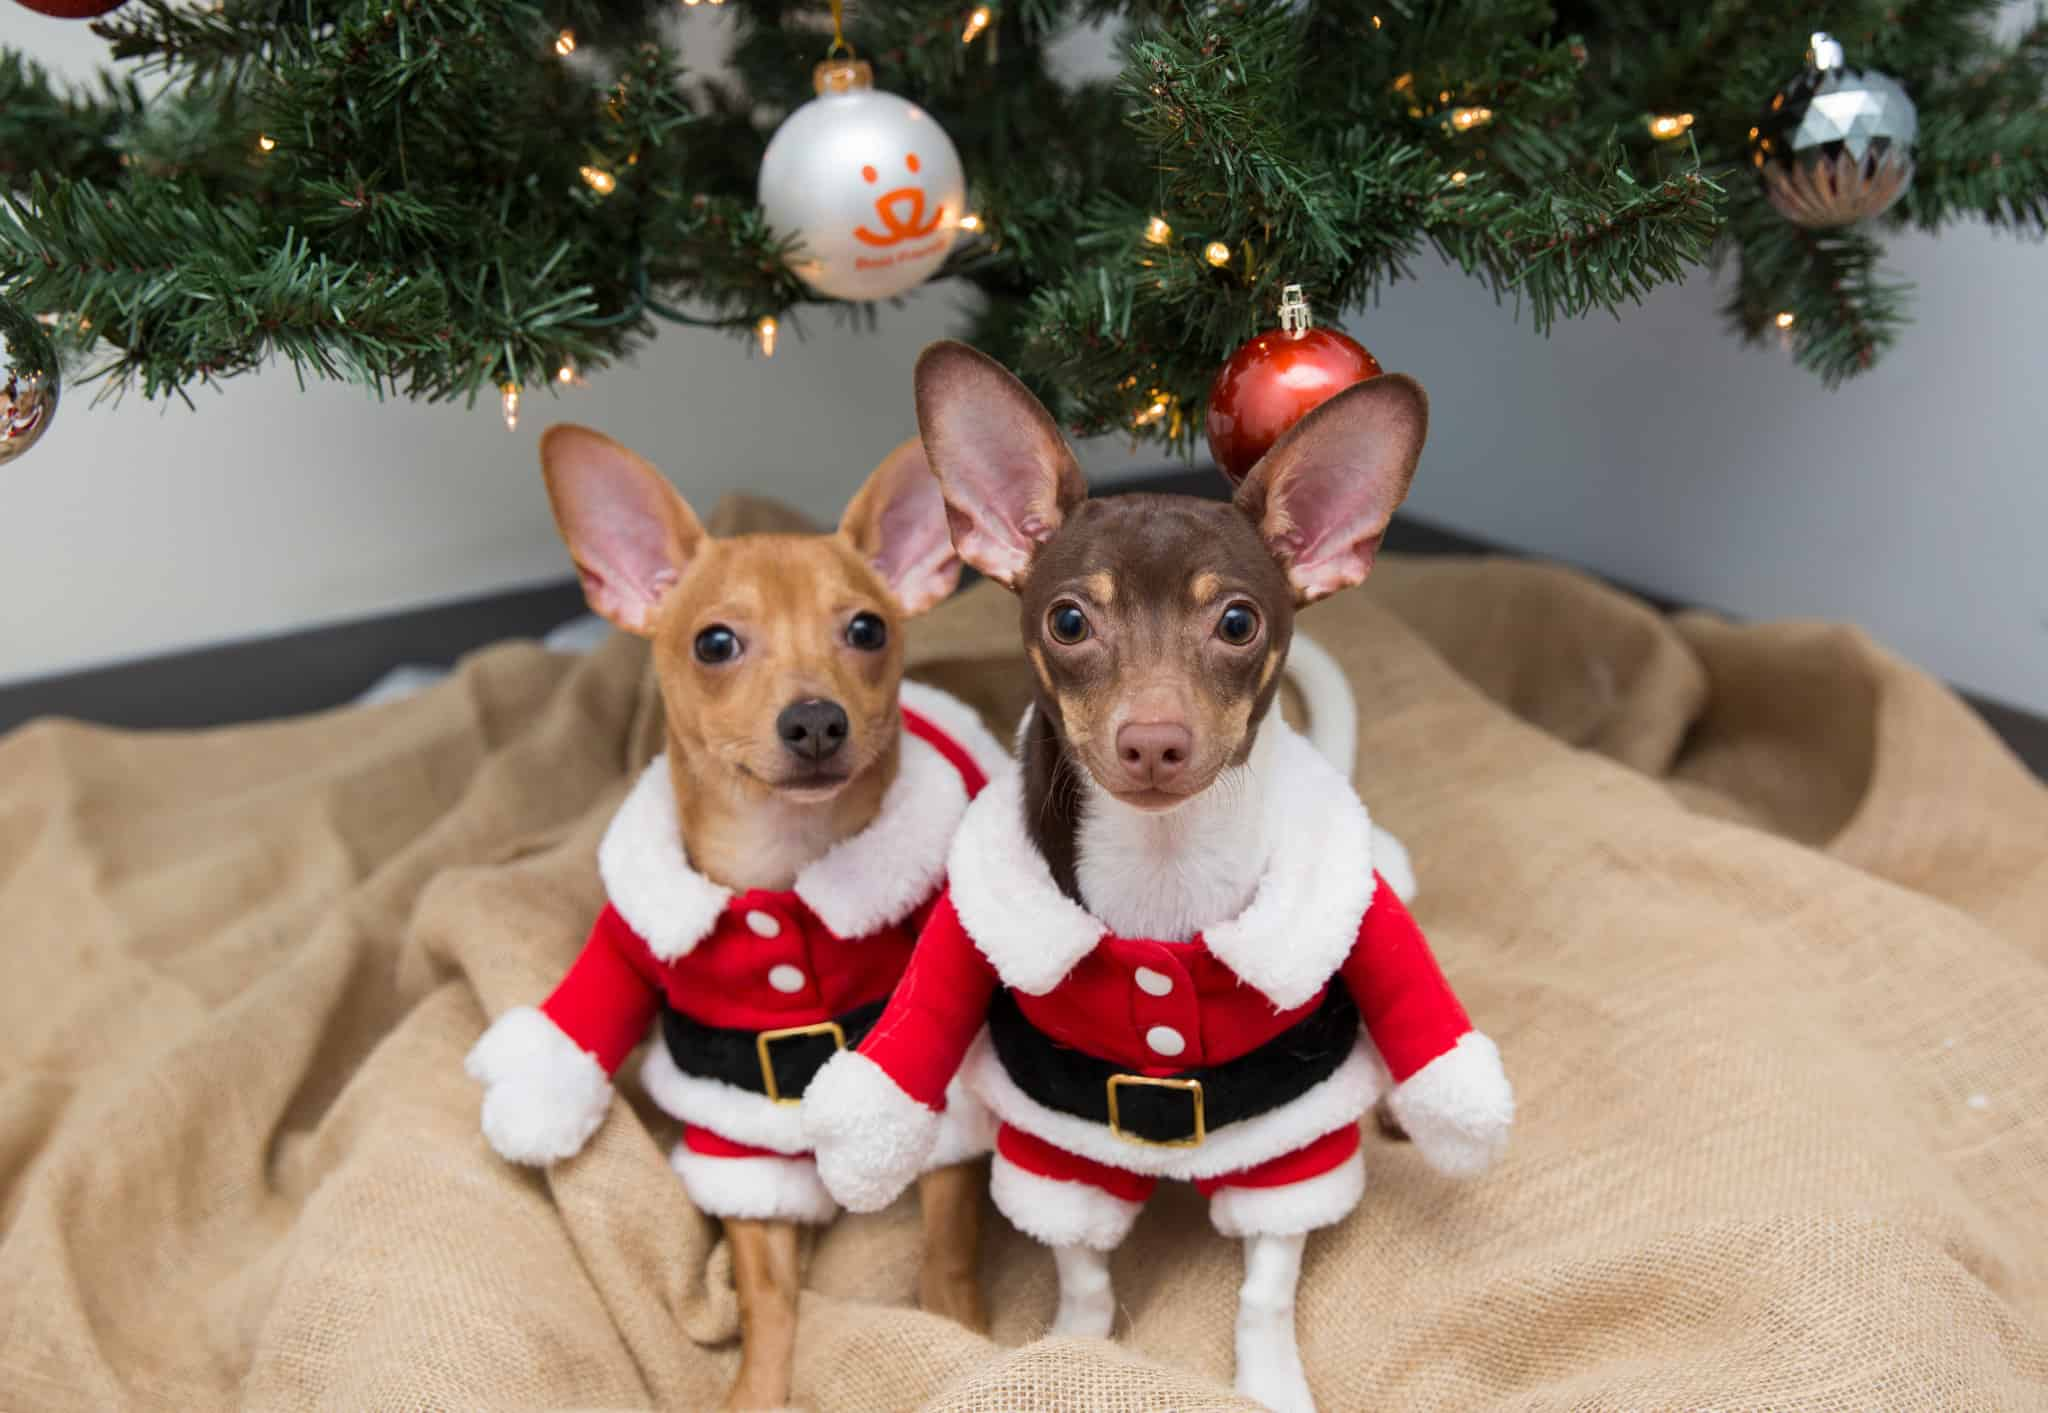 Two dogs under Christmas tree with Santa costumes